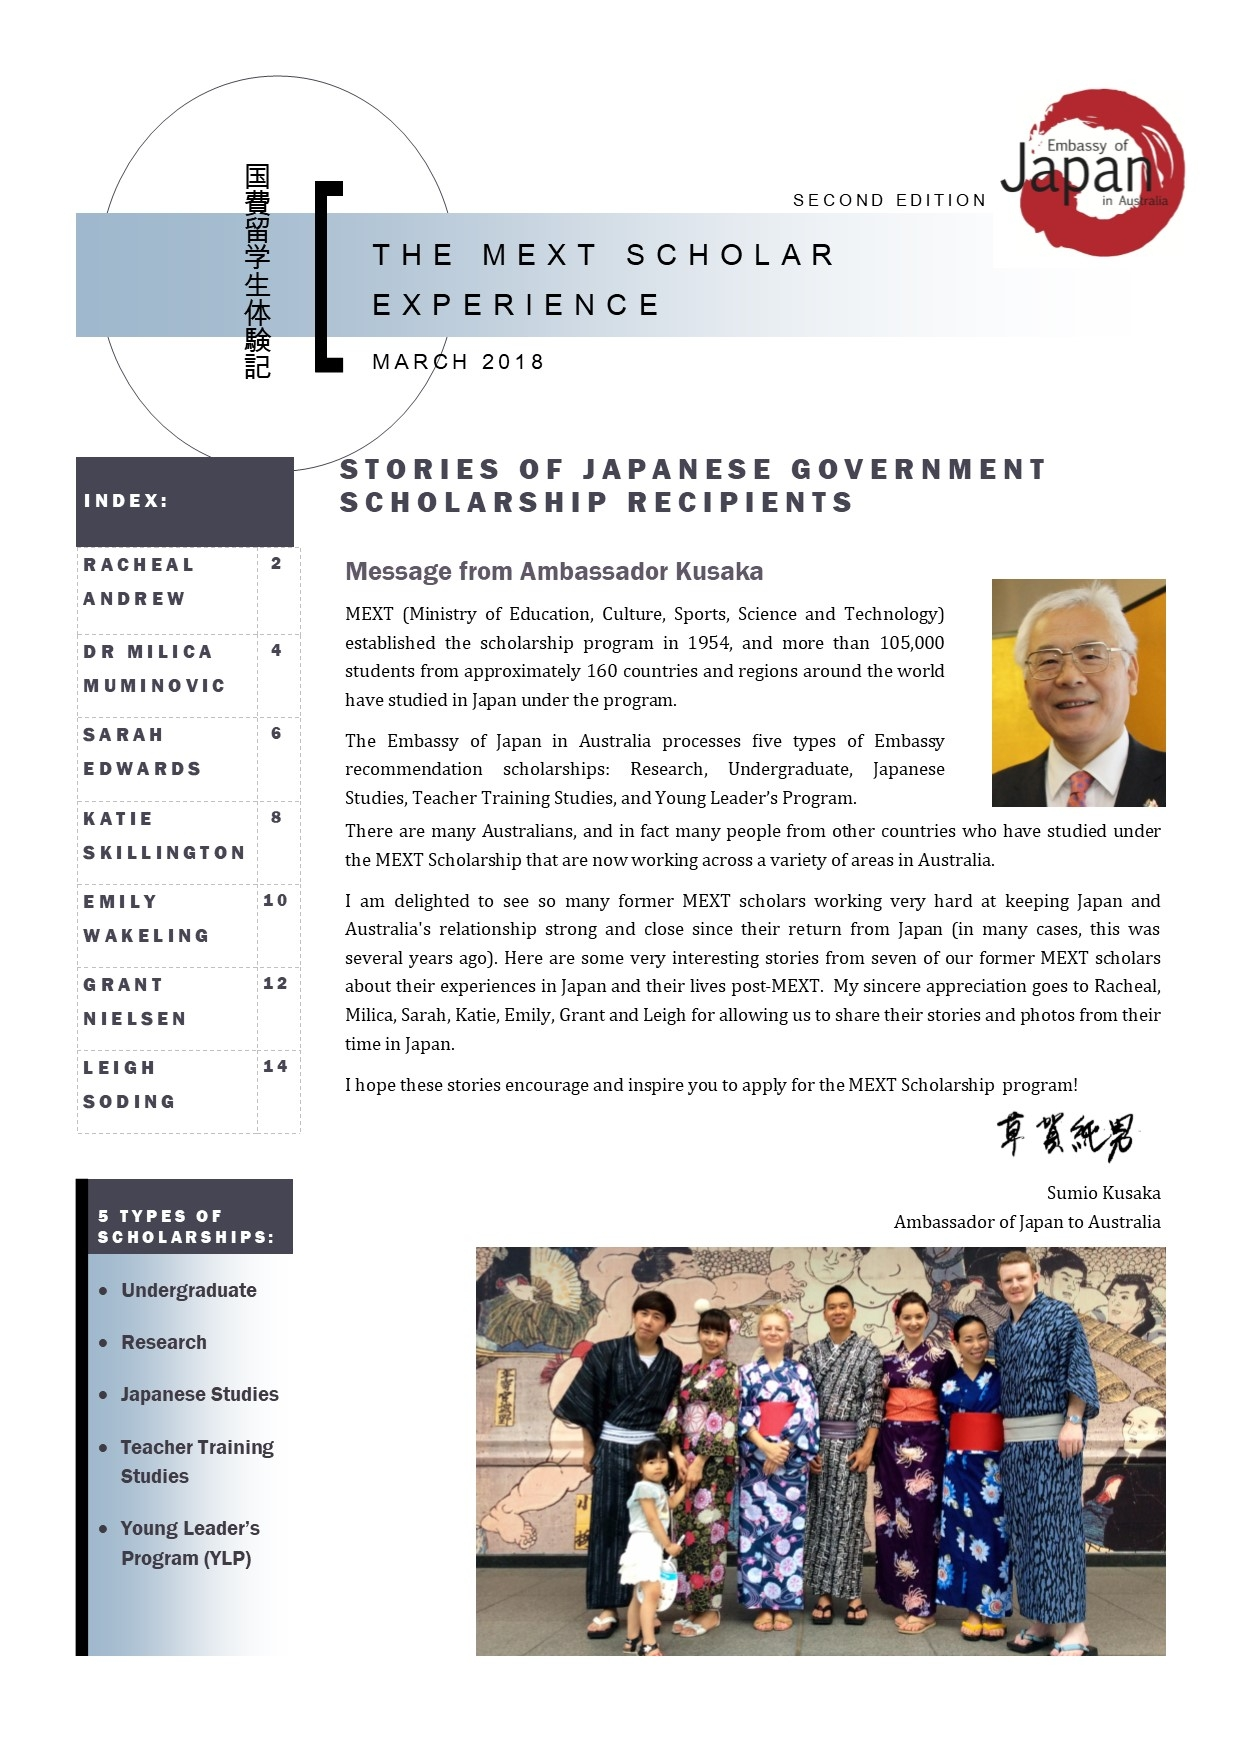 MEXT Scholarship : Embassy of Japan in Australia